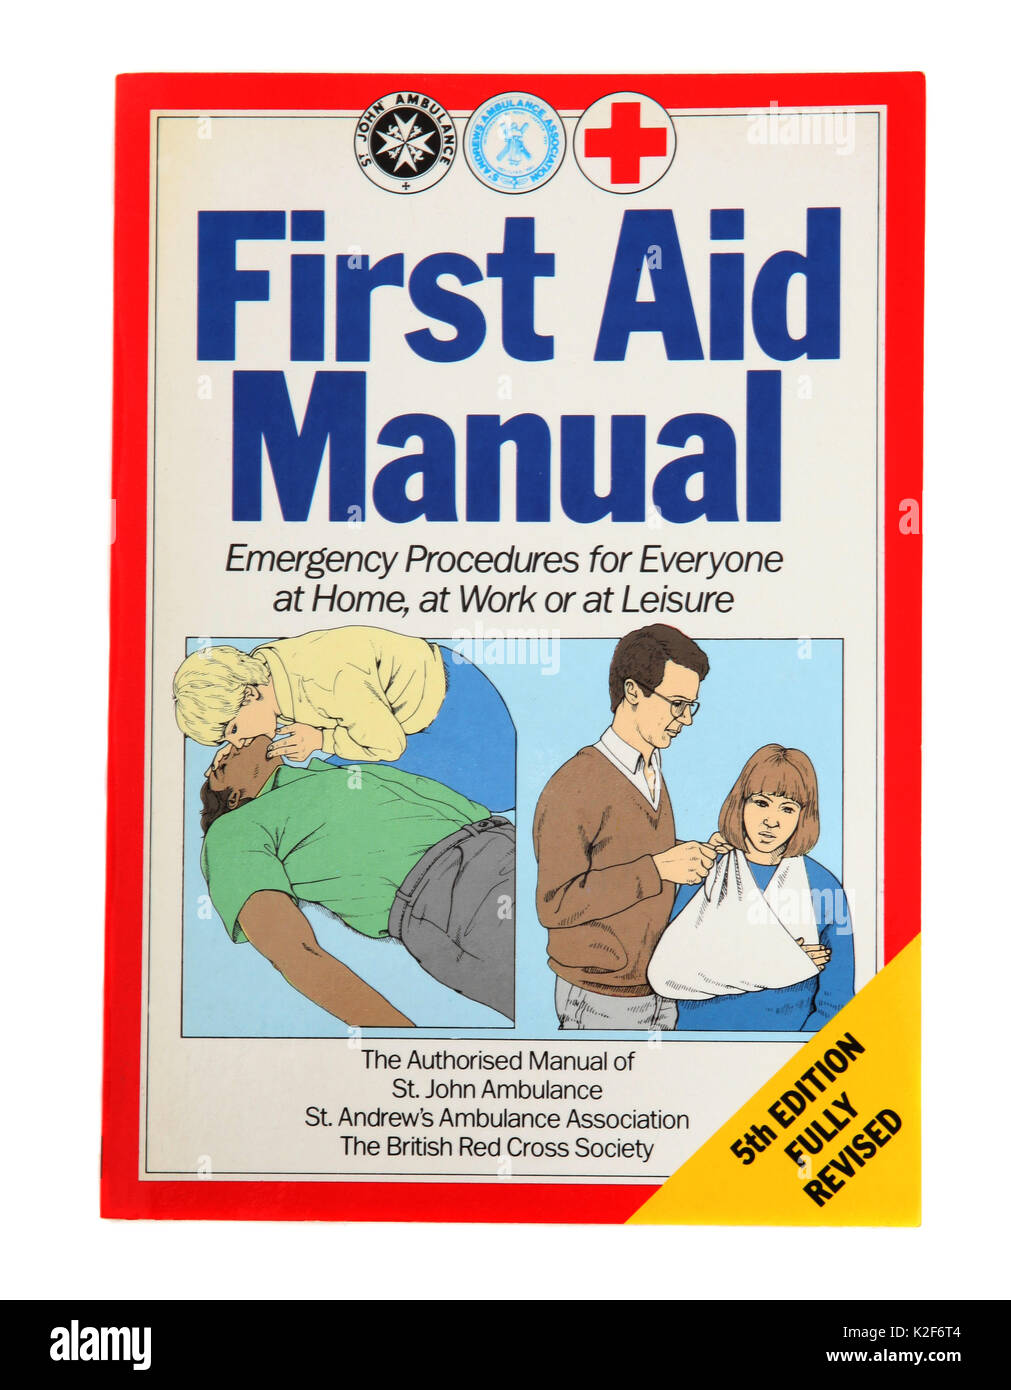 The book - First Aid Manual - Stock Image